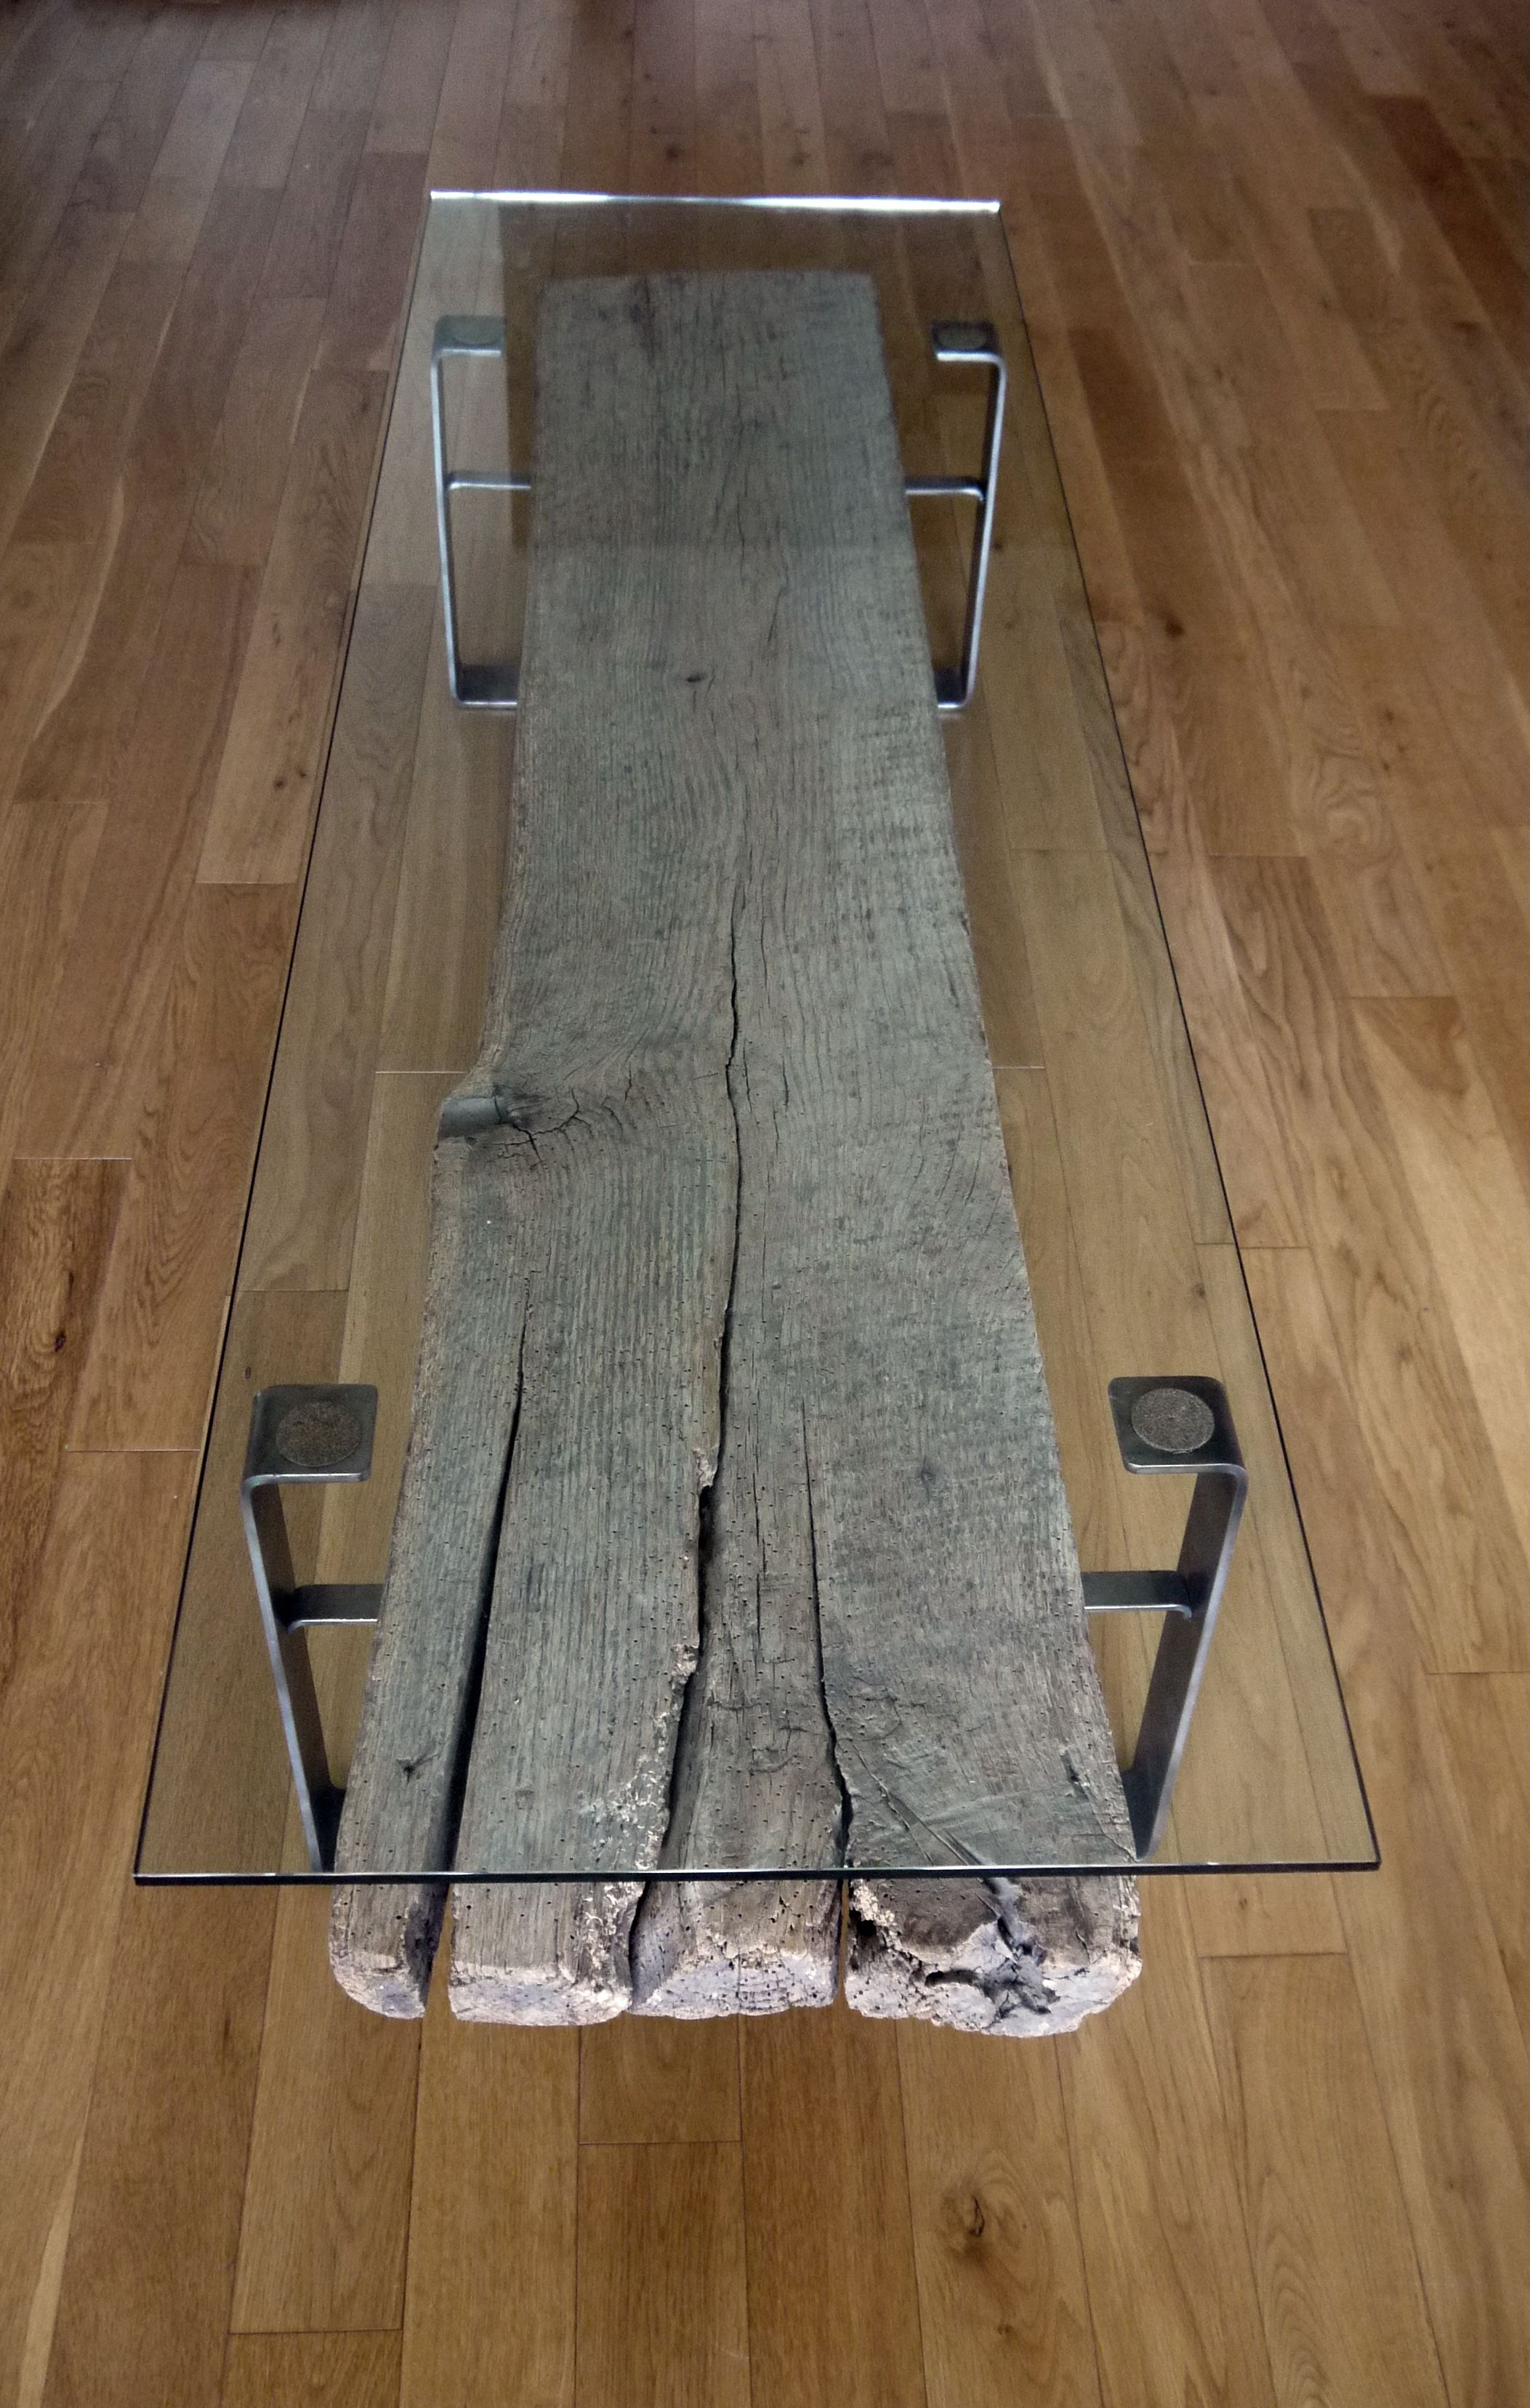 Couchtisch Holz Glas Table Made Of Glass And Wood Tisch Aus Glas Und Holz B B